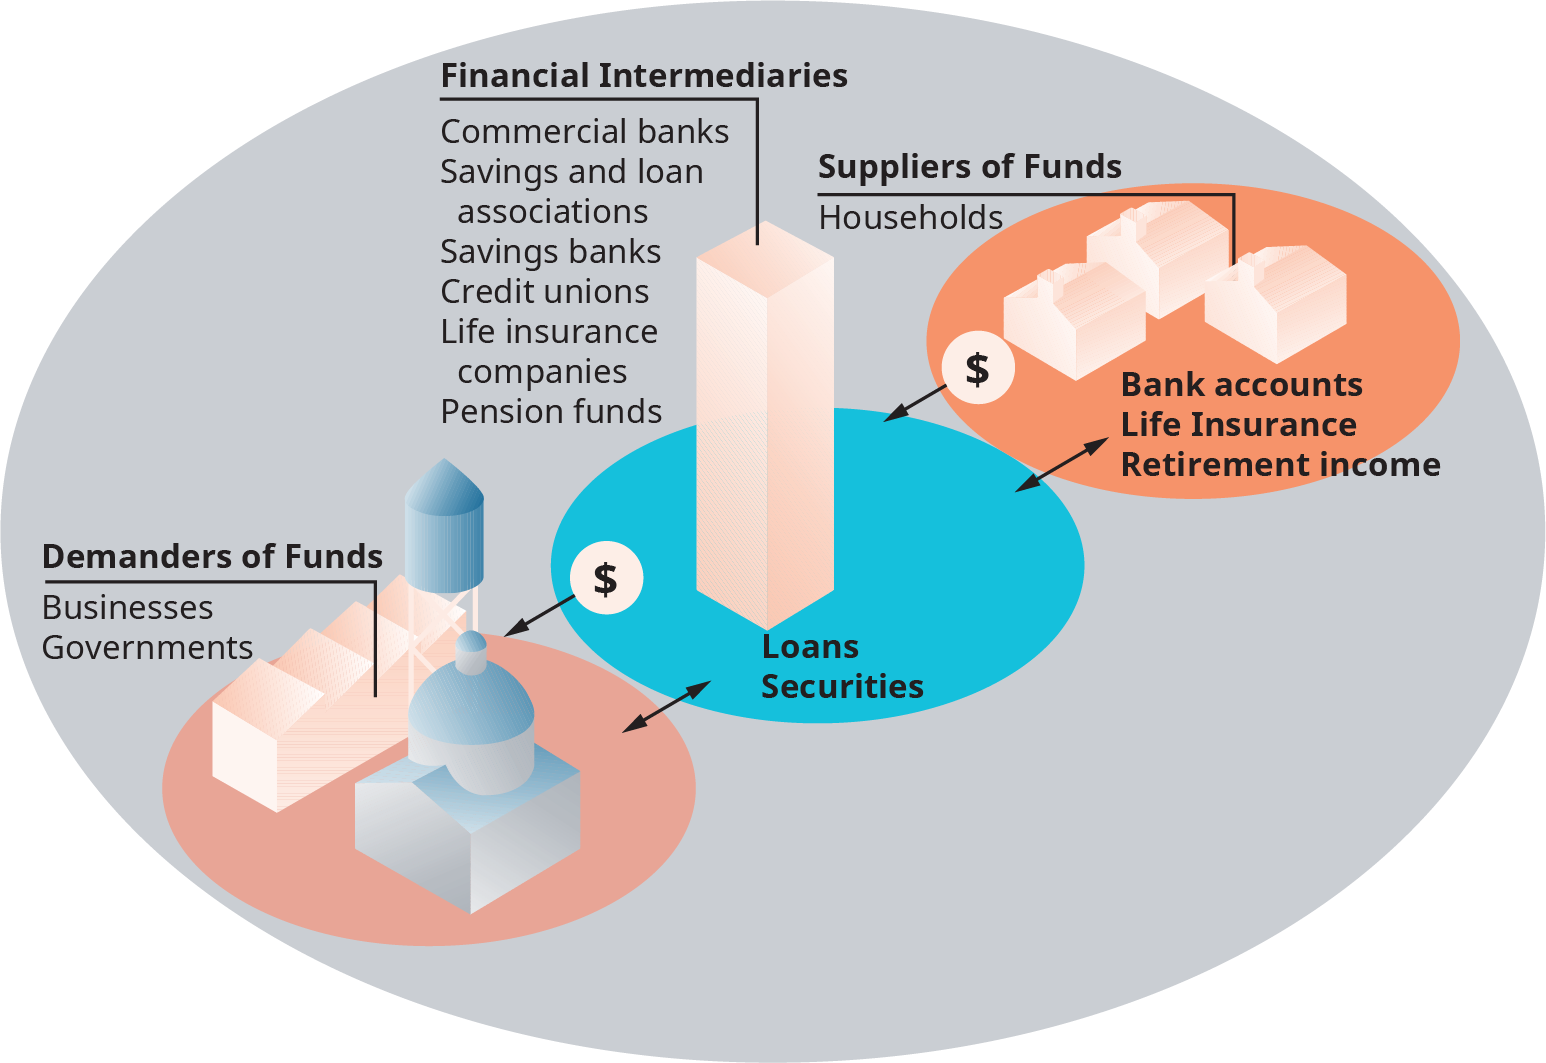 The center of the diagram is labeled, financial intermediaries. On each side of the center there are illustrations. On the left there are demanders of funds, and on the right there are suppliers of funds. Under financial intermediaries it reads as follows; commercial banks, savings and loan associations, savings banks, credit unions, life insurance companies and pension funds. Arrows point back and forth from here to the demander of funds, and the arrow is labeled as loans, securities. Demanders of funds are noted as business; governments. Arrows point back and forth from the financial intermediaries and suppliers of funds; the arrow is labeled bank accounts, life insurance, and retirement income. Supplier of funds are noted as households.